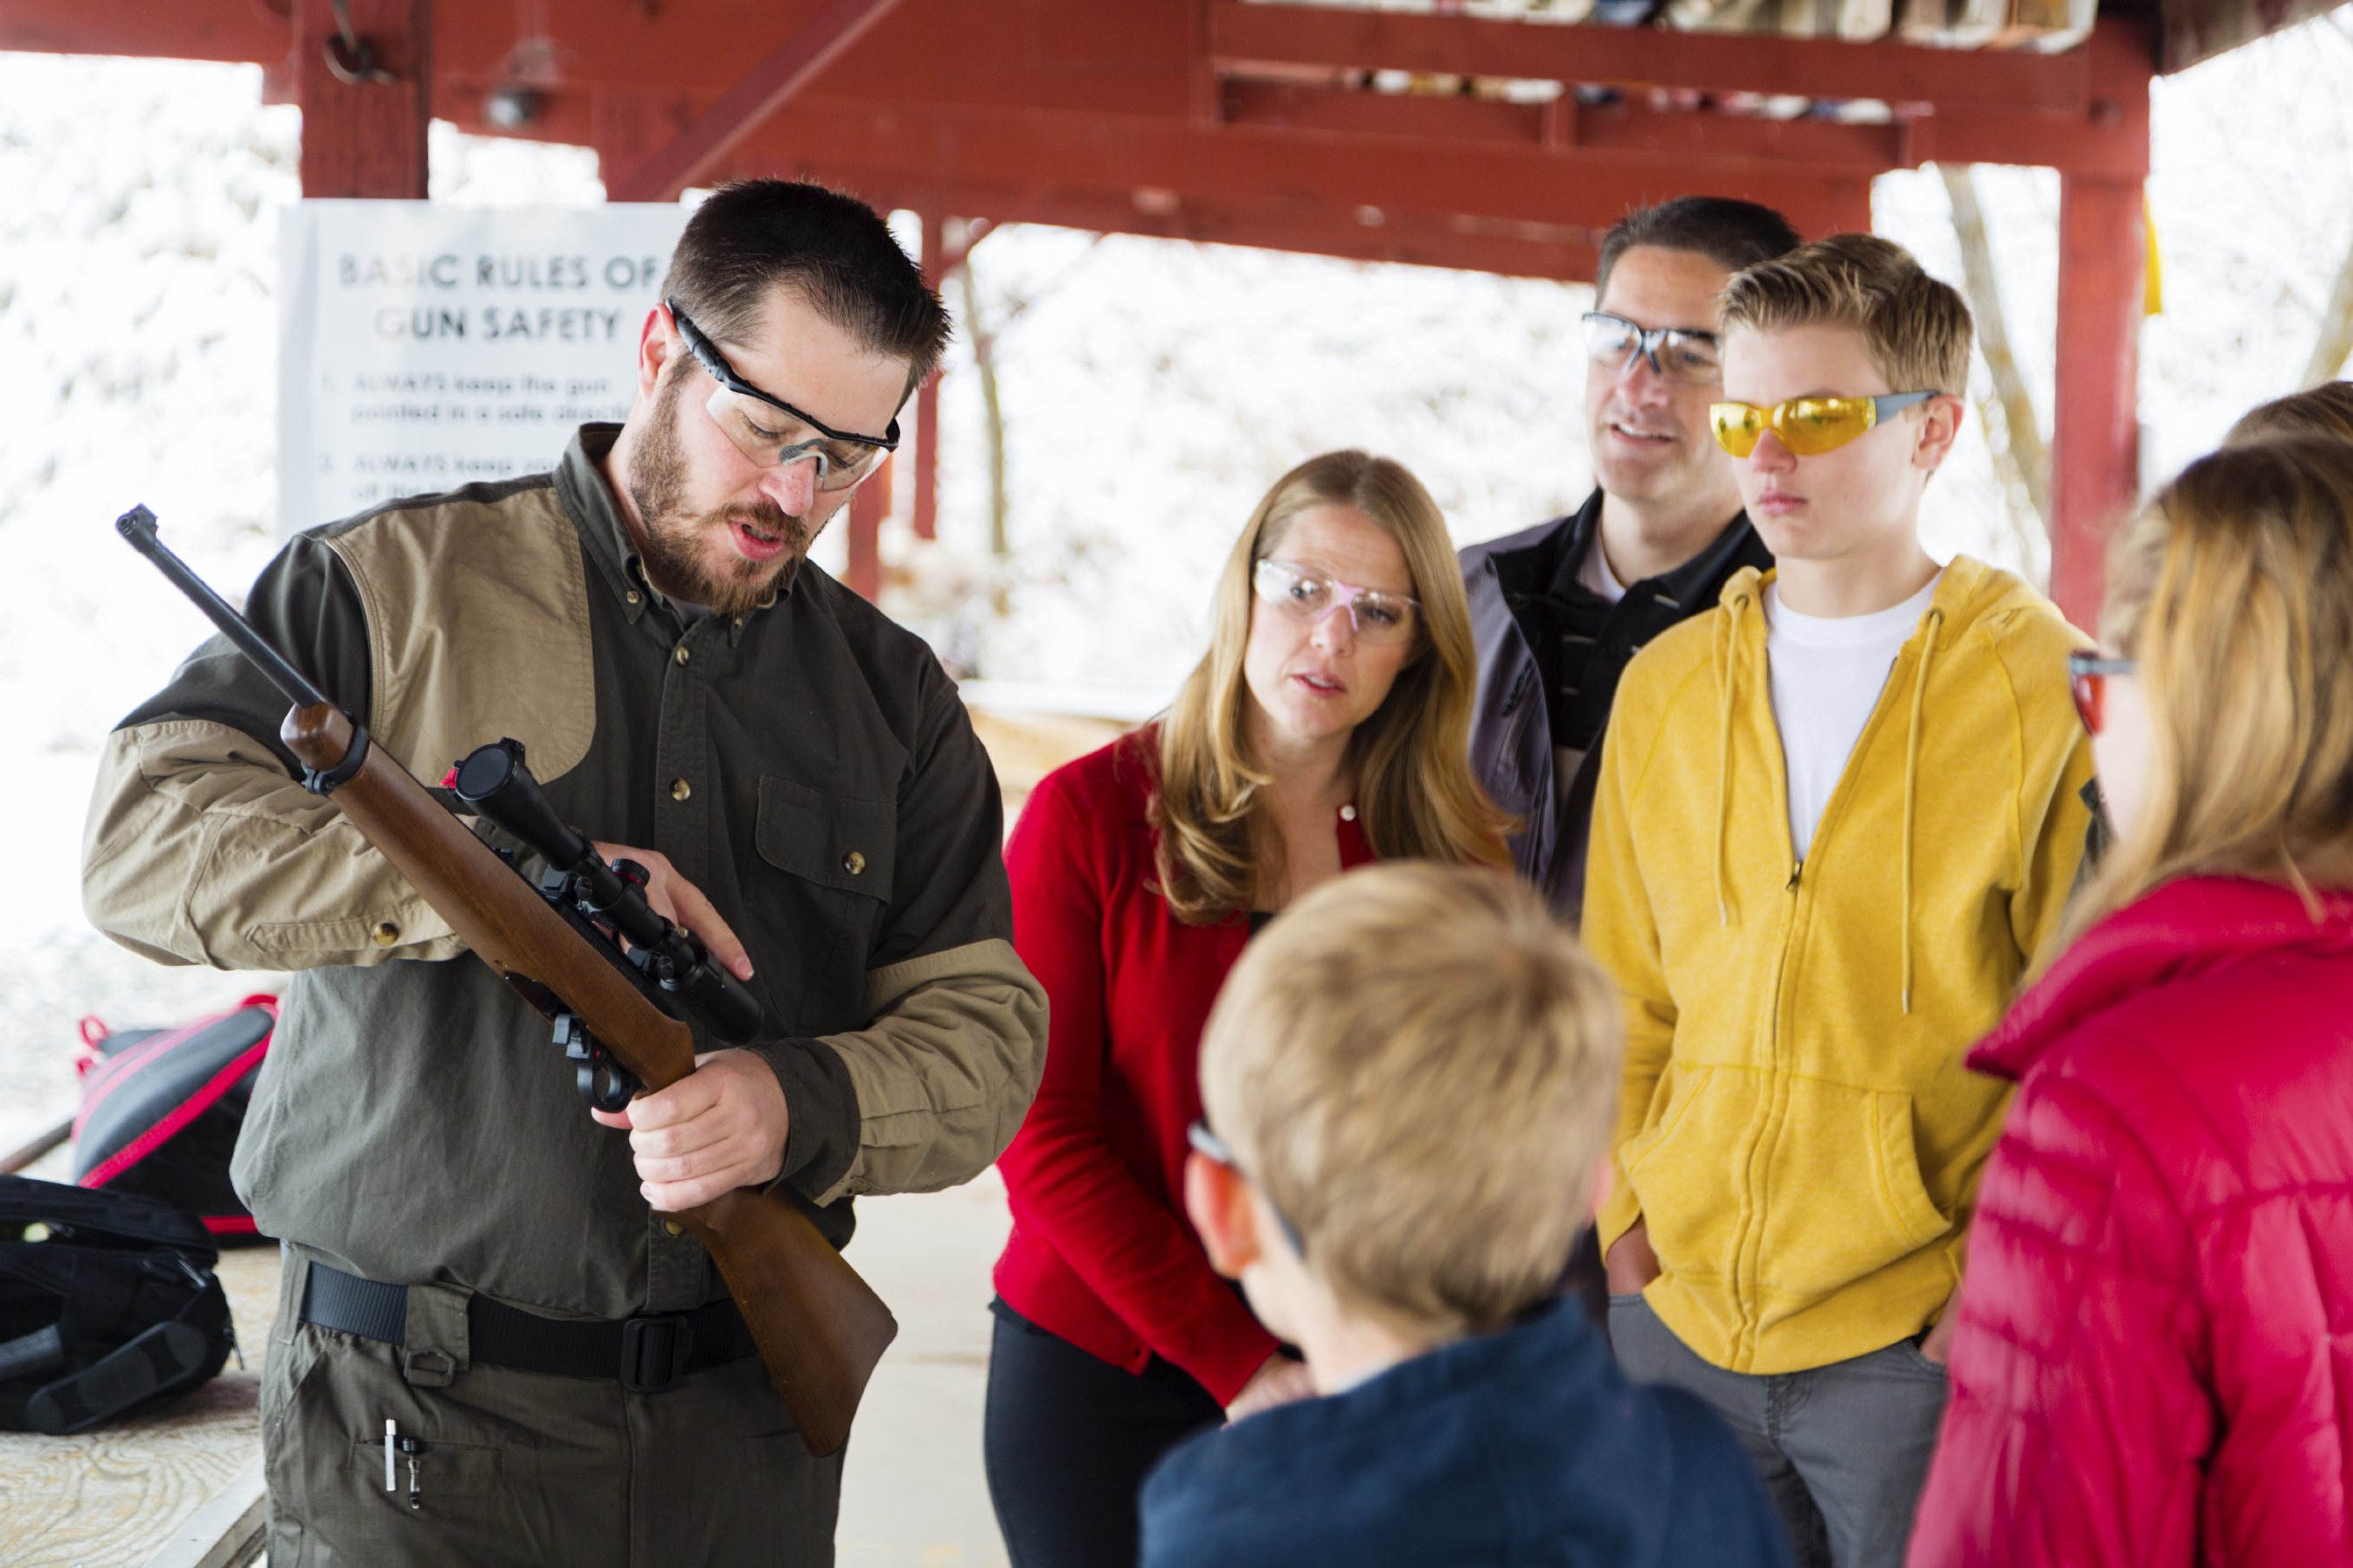 Teaching Armed Self Defense To Your Family